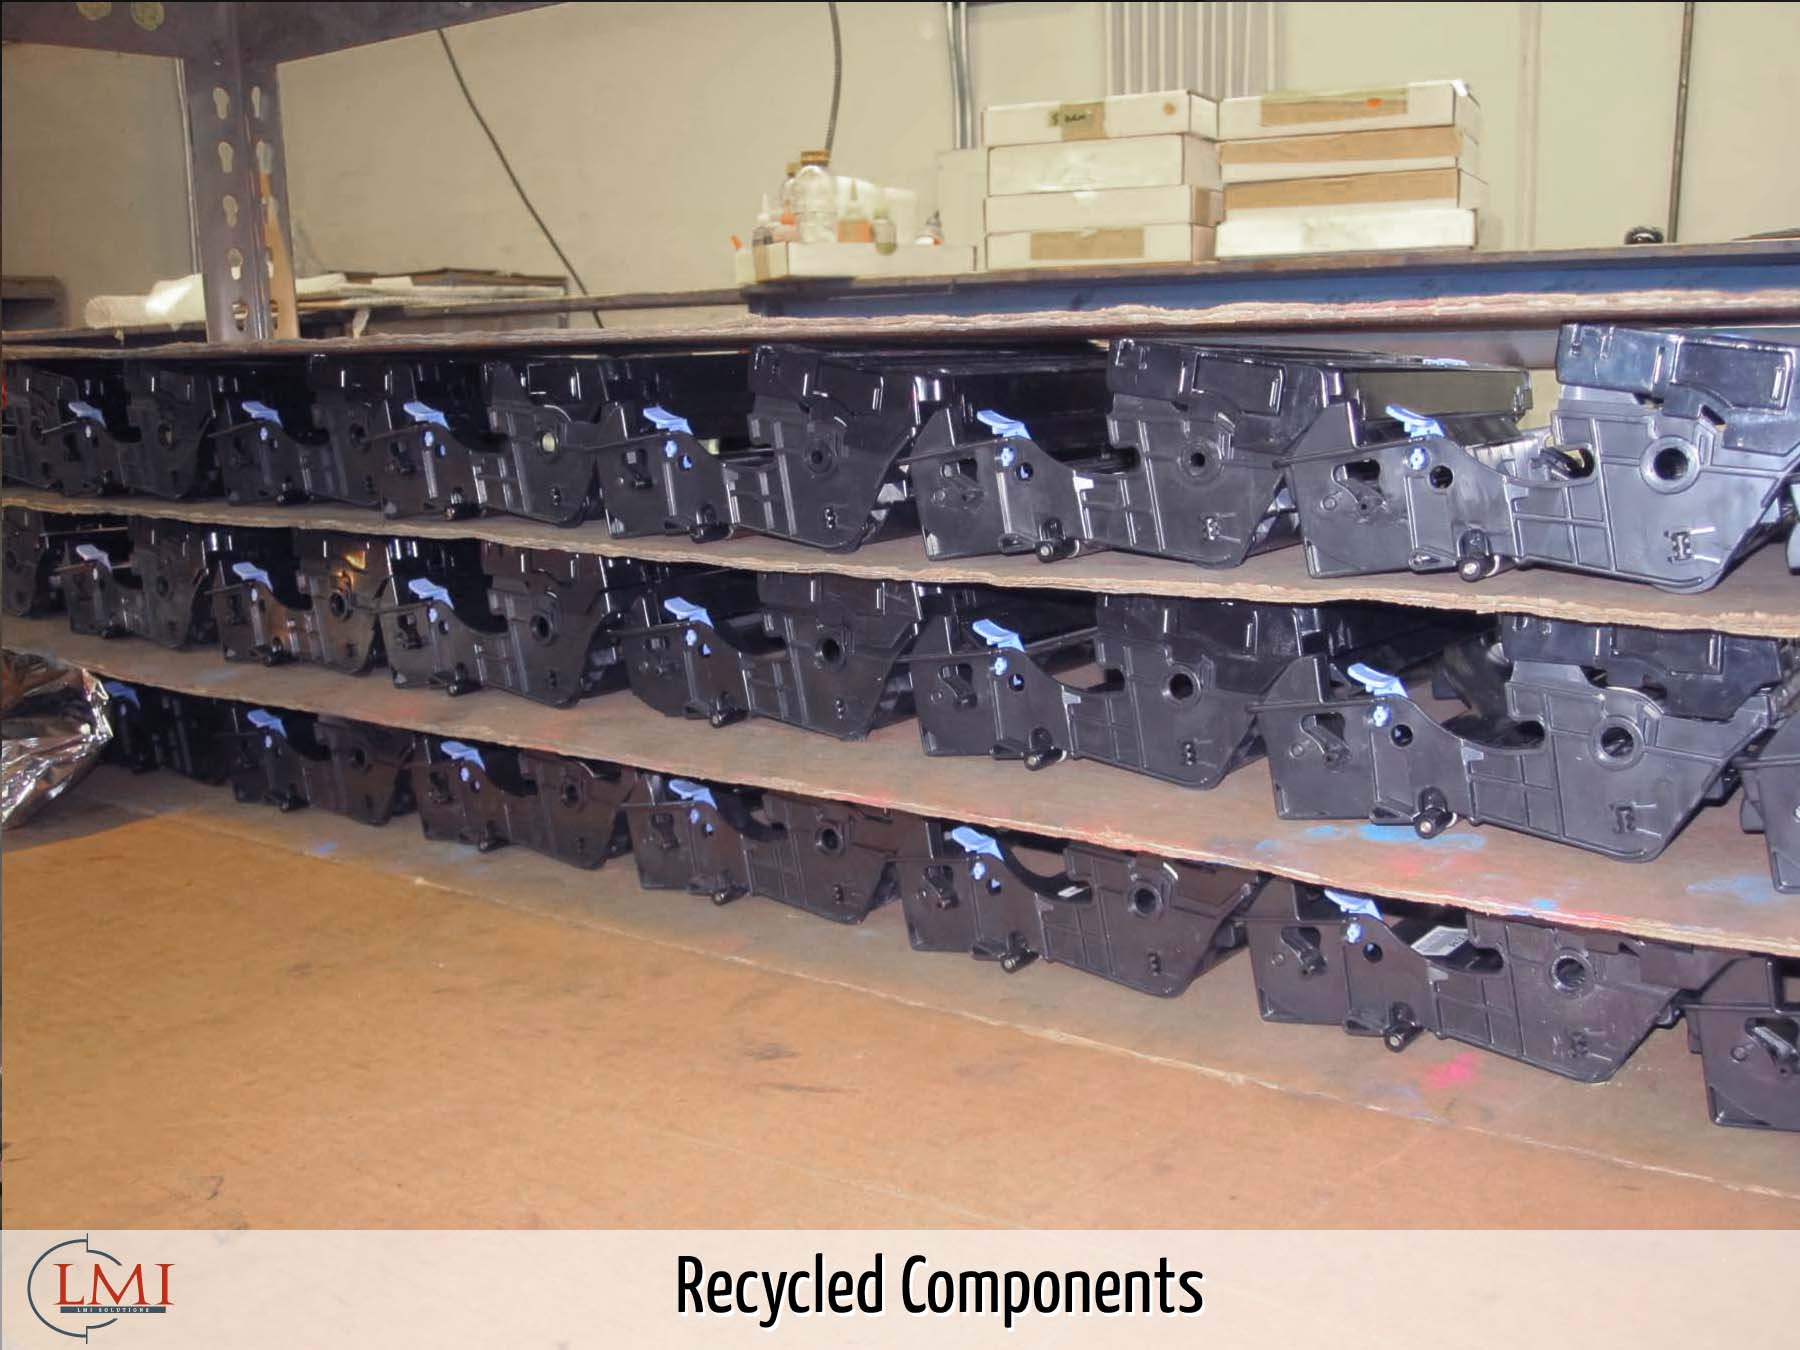 Recycled Components